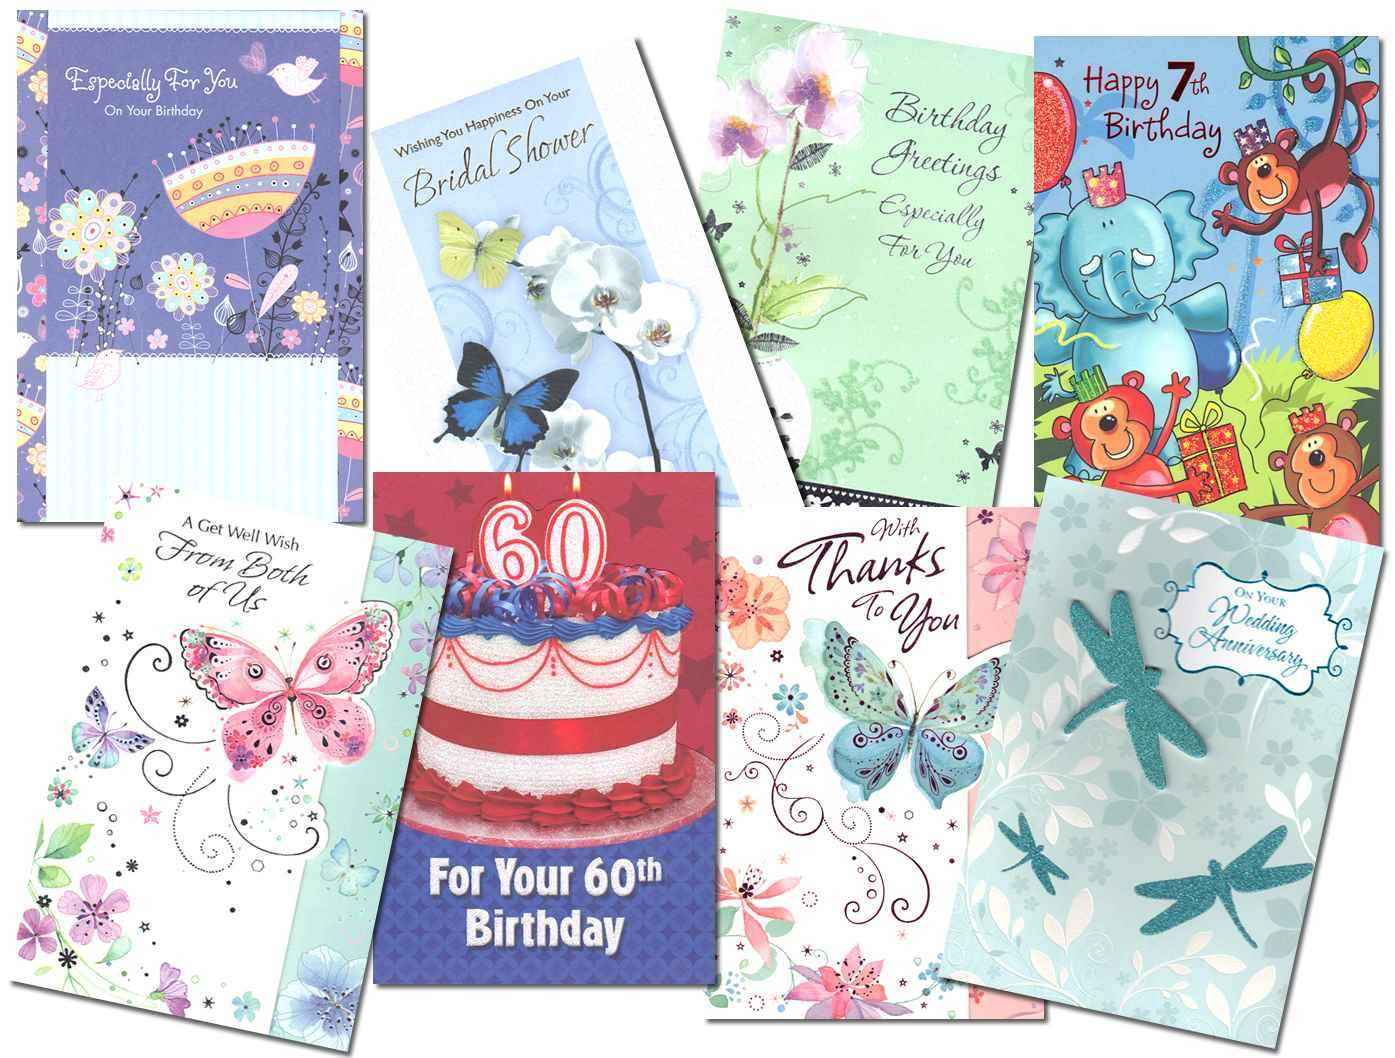 Wholesale Greeting Cards Premium Quality Highest Profits